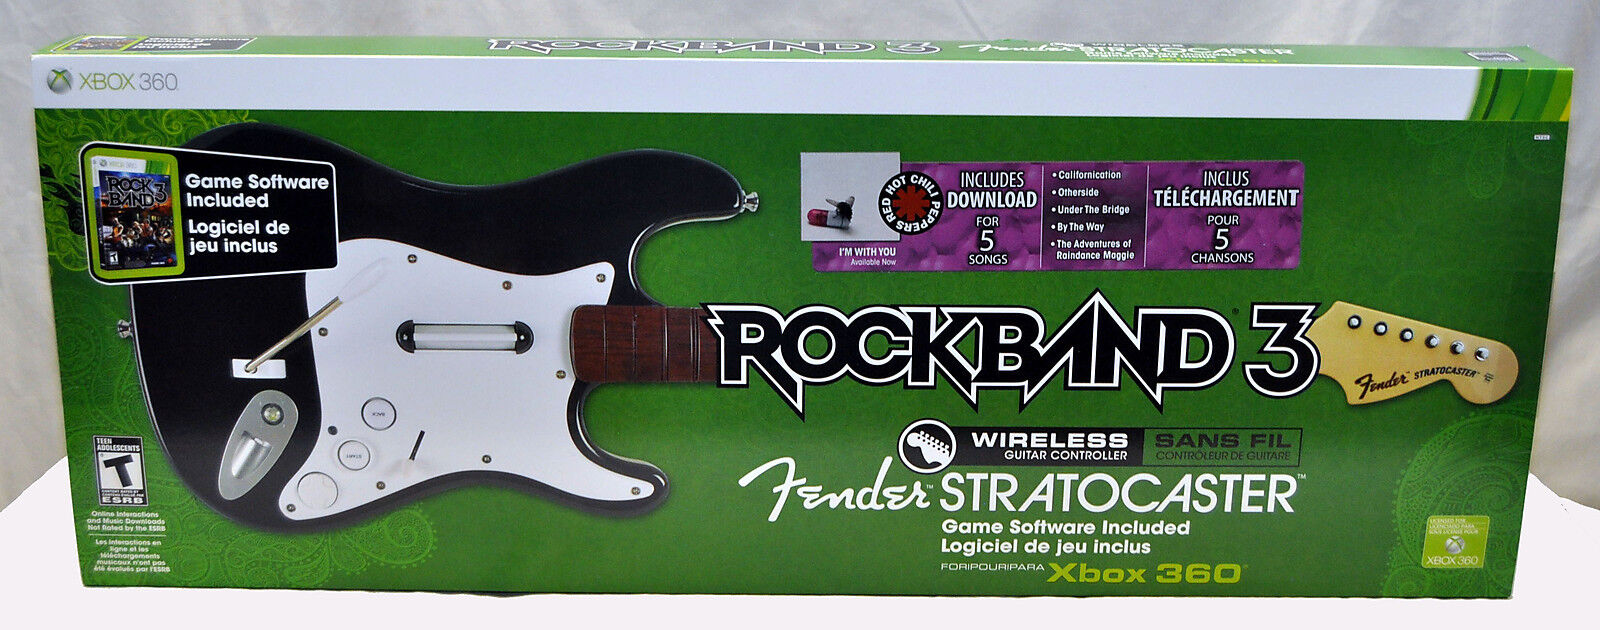 Sealed new xbox 360 rock band 3 game wireless guitar bundle set sealed new xbox 360 rock band 3 game wireless guitar bundle set fender 1 2 4 publicscrutiny Gallery